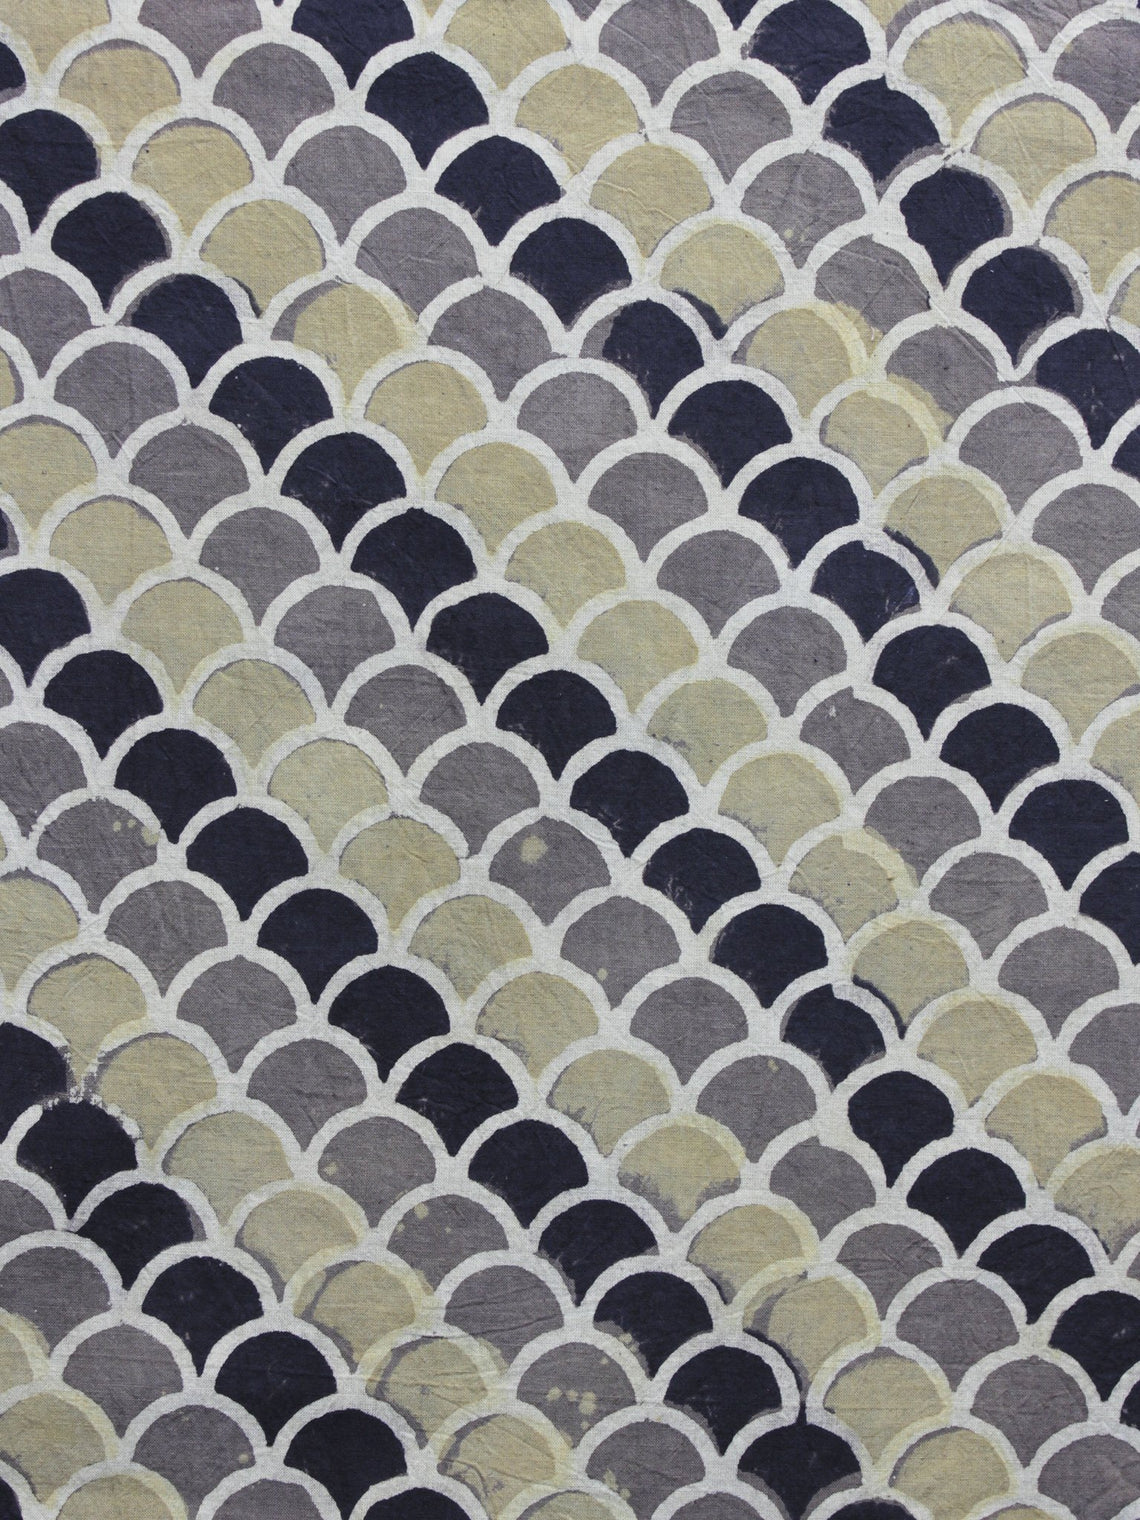 Grey Black Olive Green Ajrakh Printed Cotton Fabric Per Meter - F003F1186